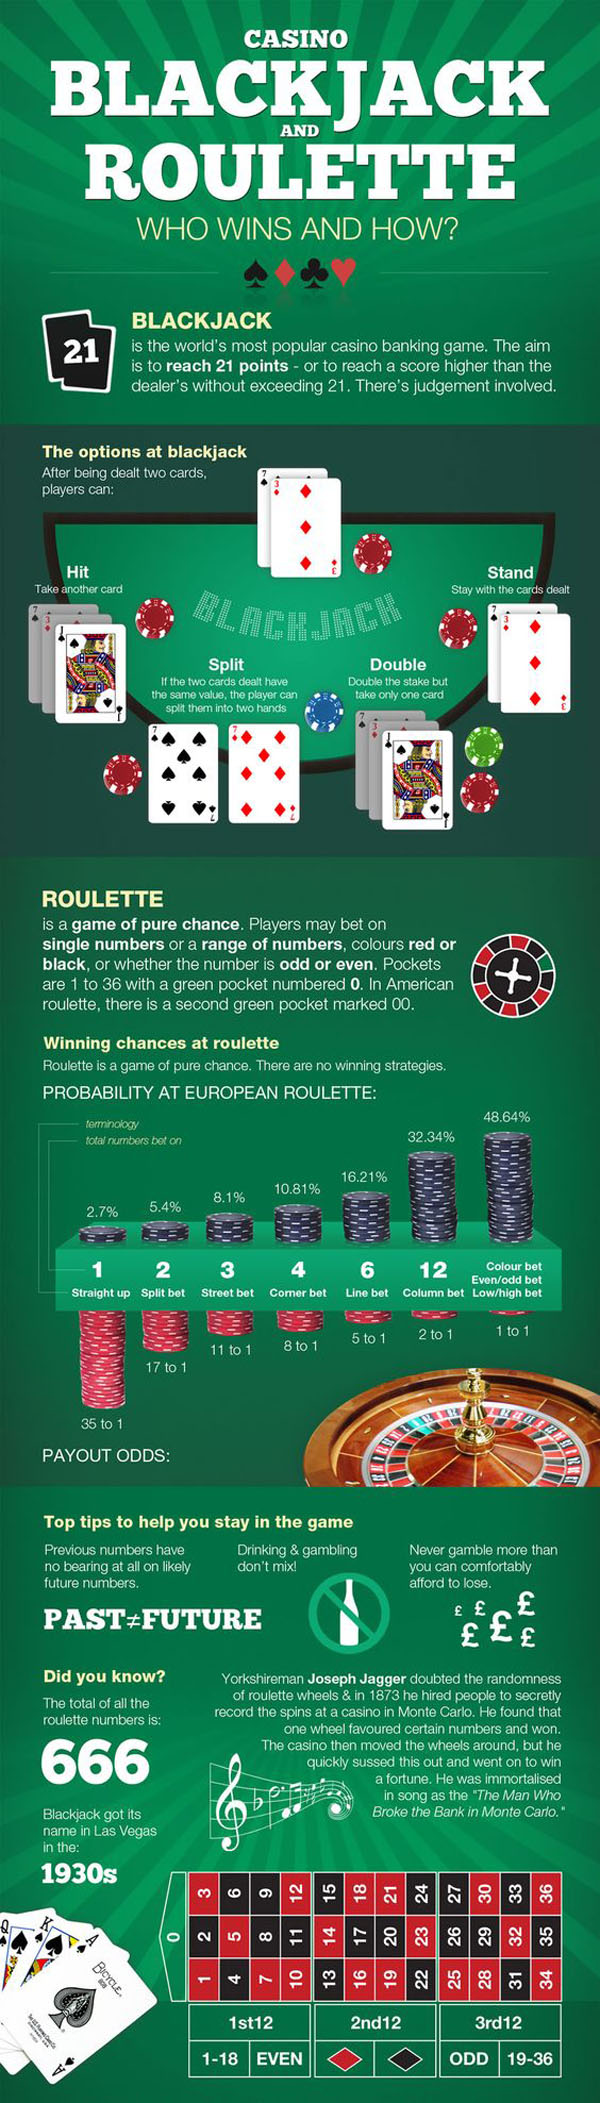 Blackjack and Roulette Who Wins and How?